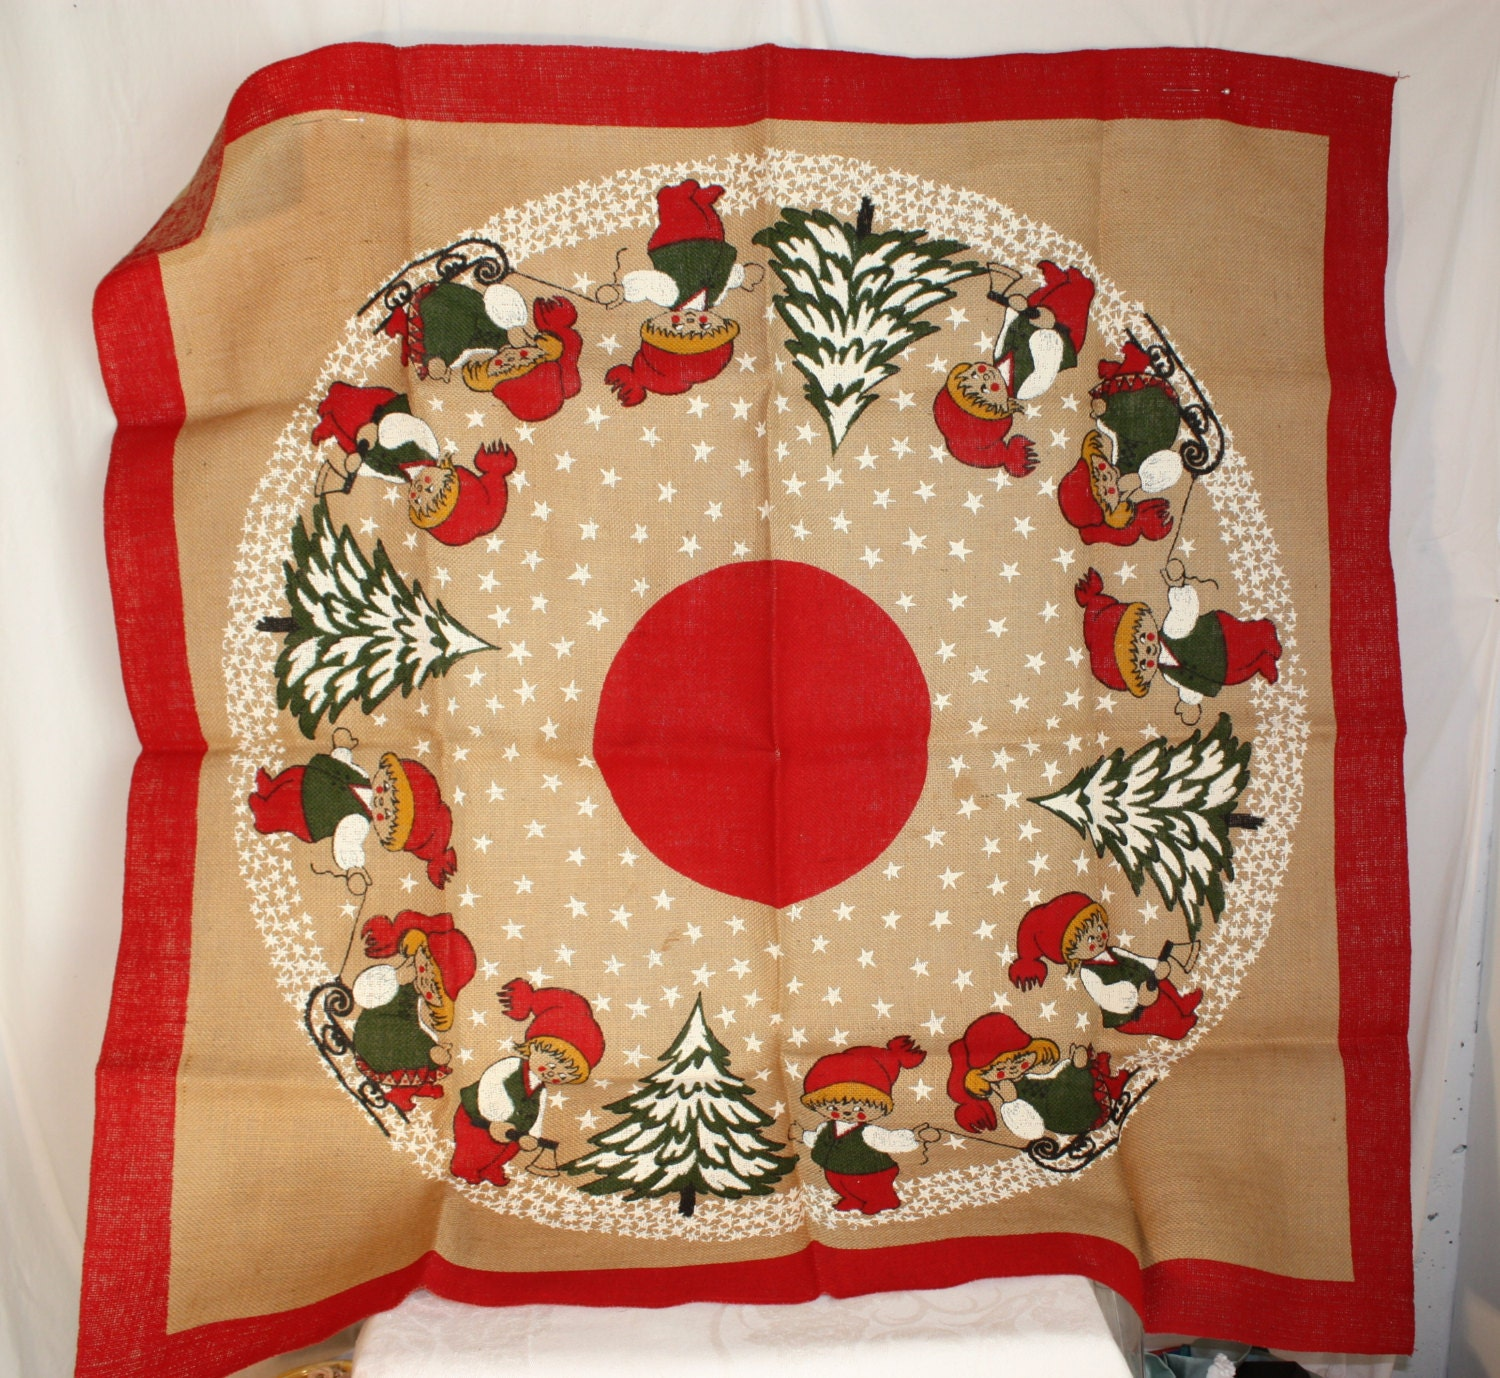 39 Inch Square Printed Tree Skirt Or Table Cover On Burlap